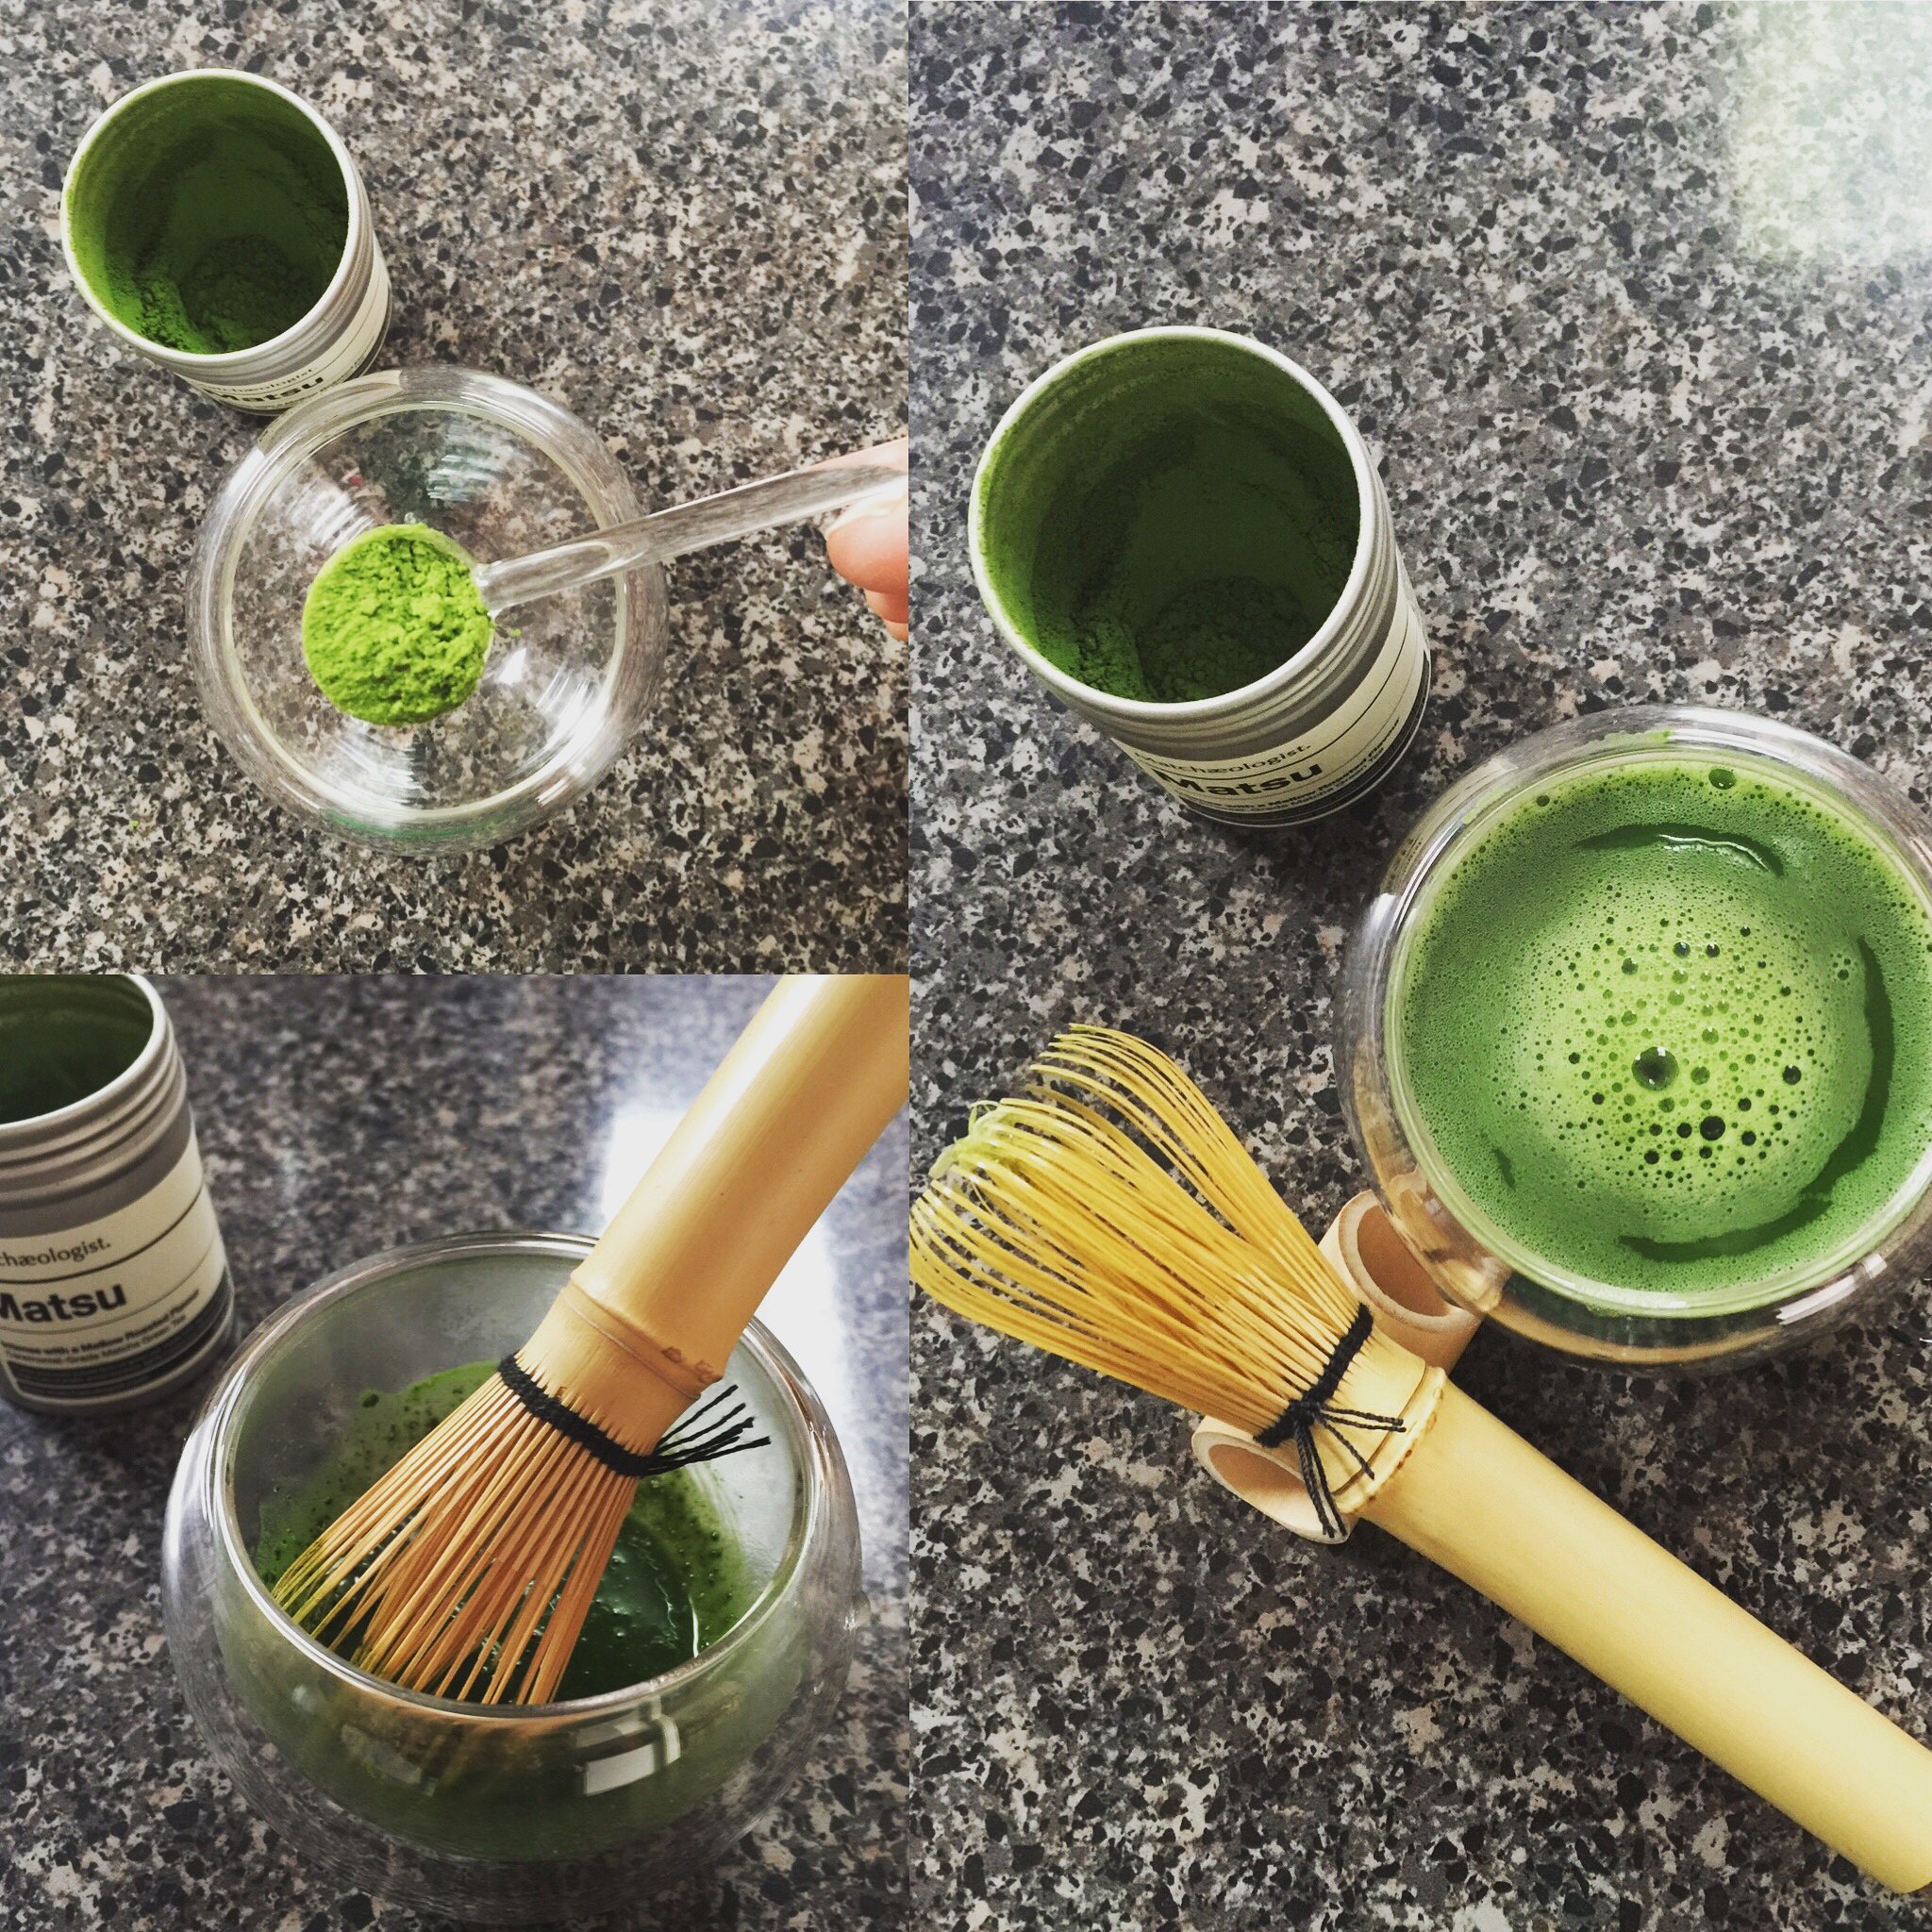 My first Matchaeologist Set with their Matsu variety of matcha